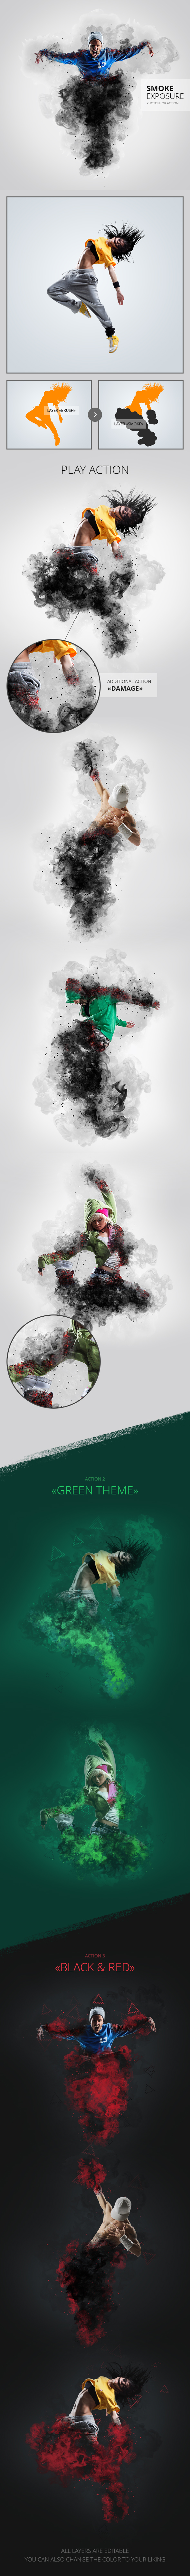 Smoke Exposure Photoshop Action - Photo Effects Actions